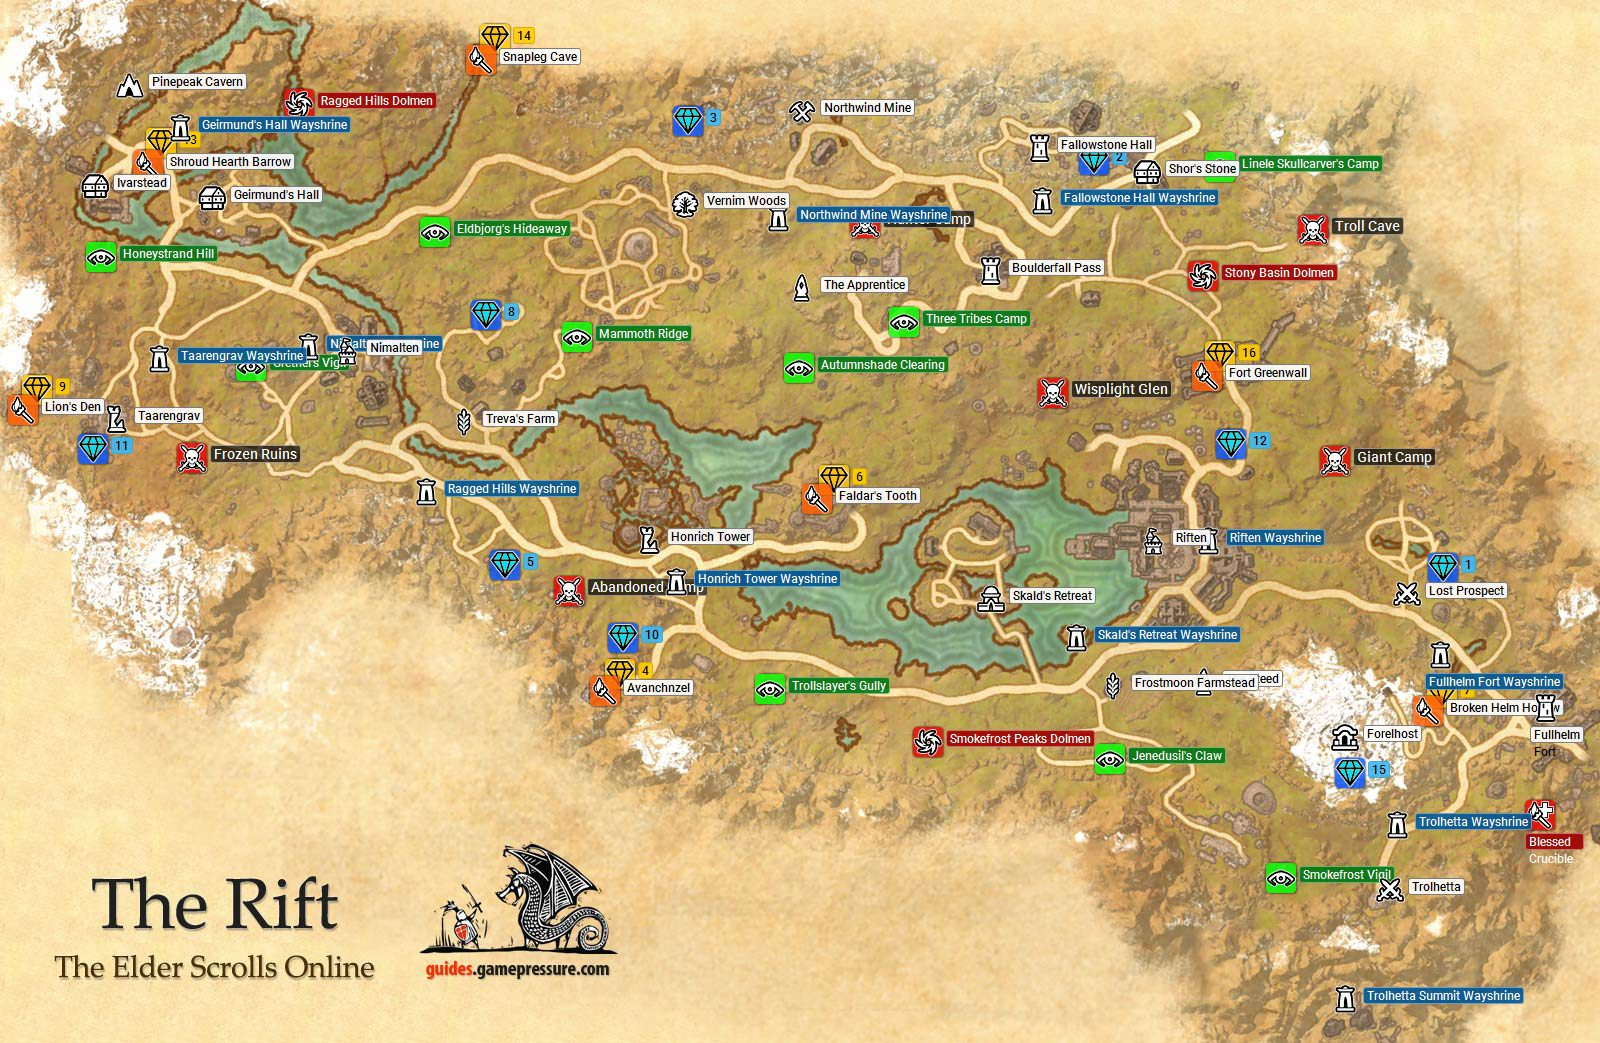 The Rift | Ebonheart Pact - The Elder Scrolls Online Game Guide